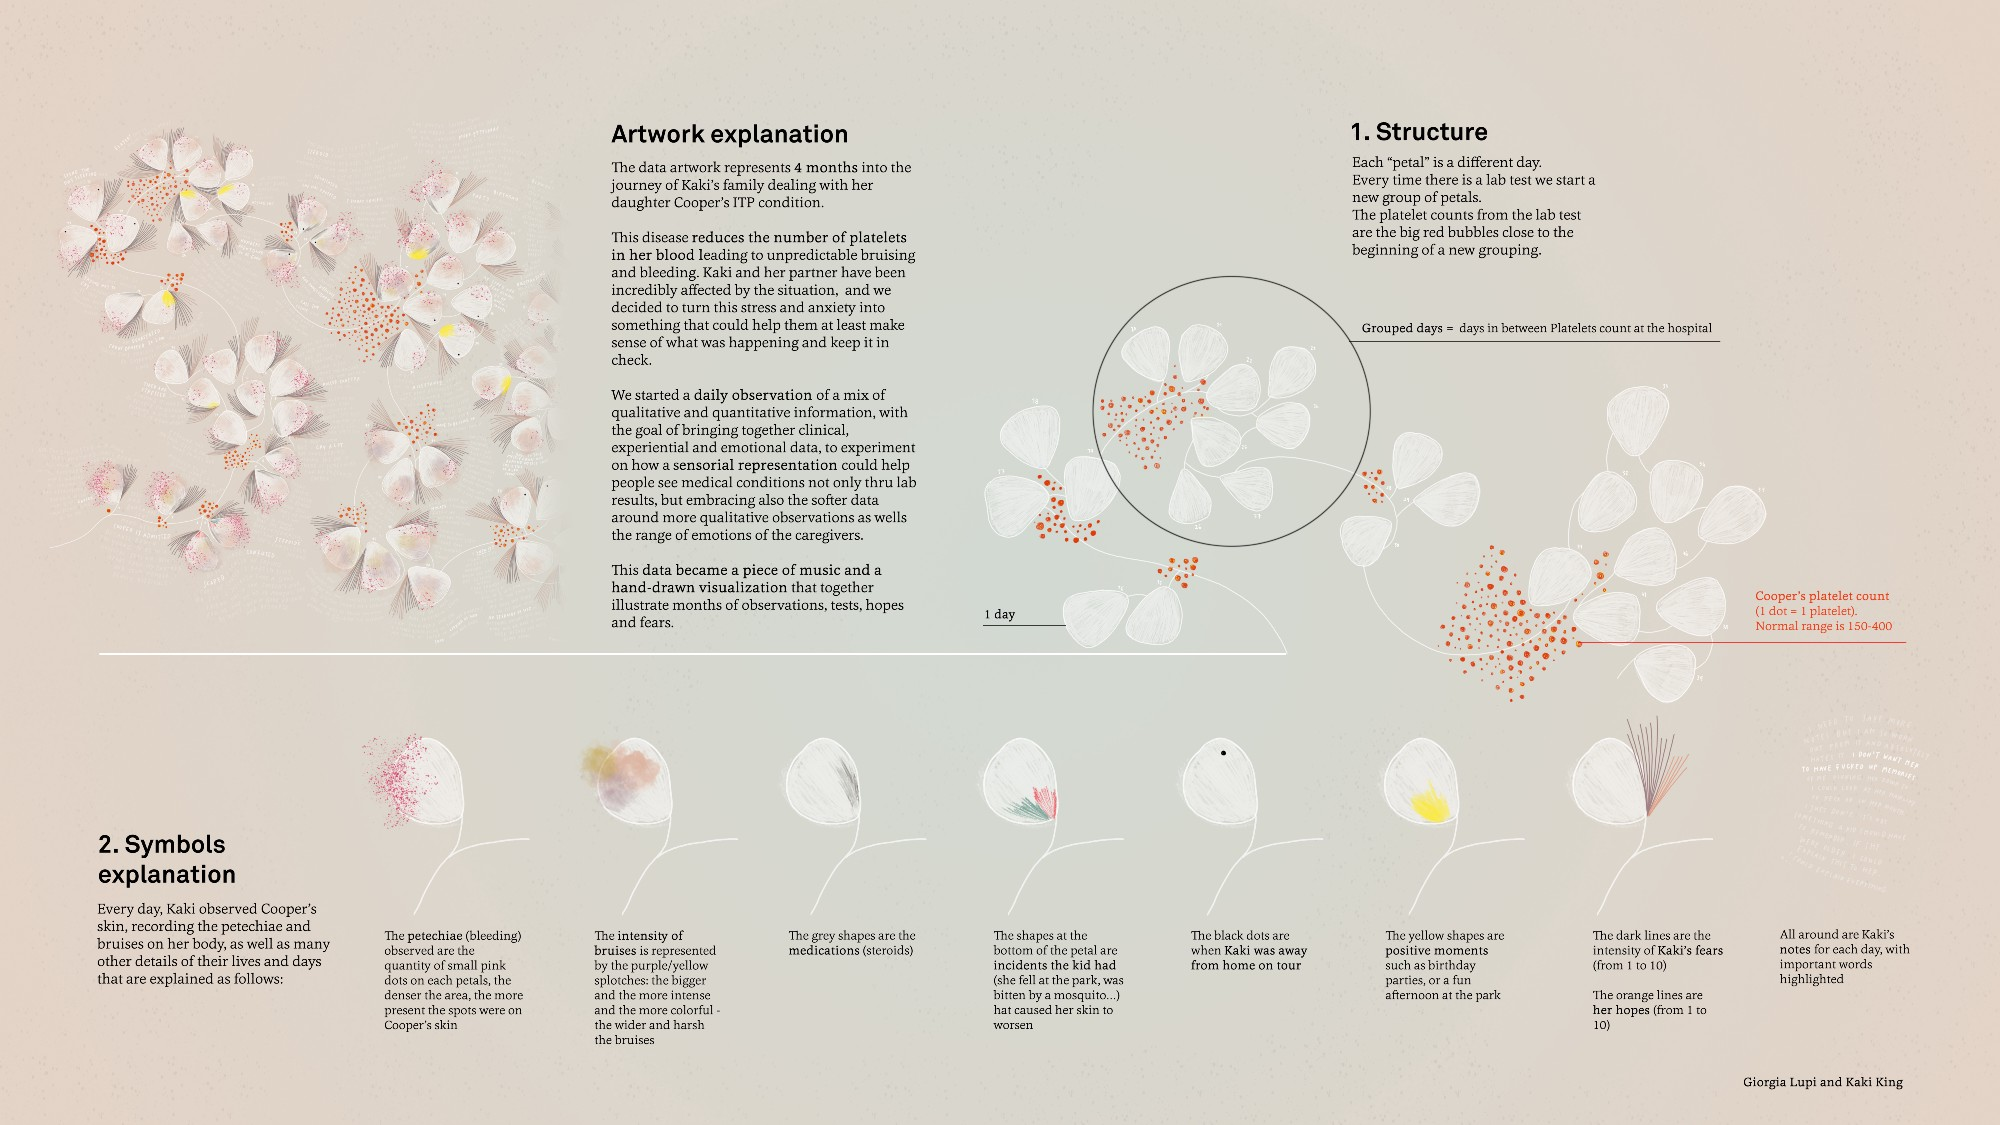 A complete key to interpret the artwork    (high-resolution here)